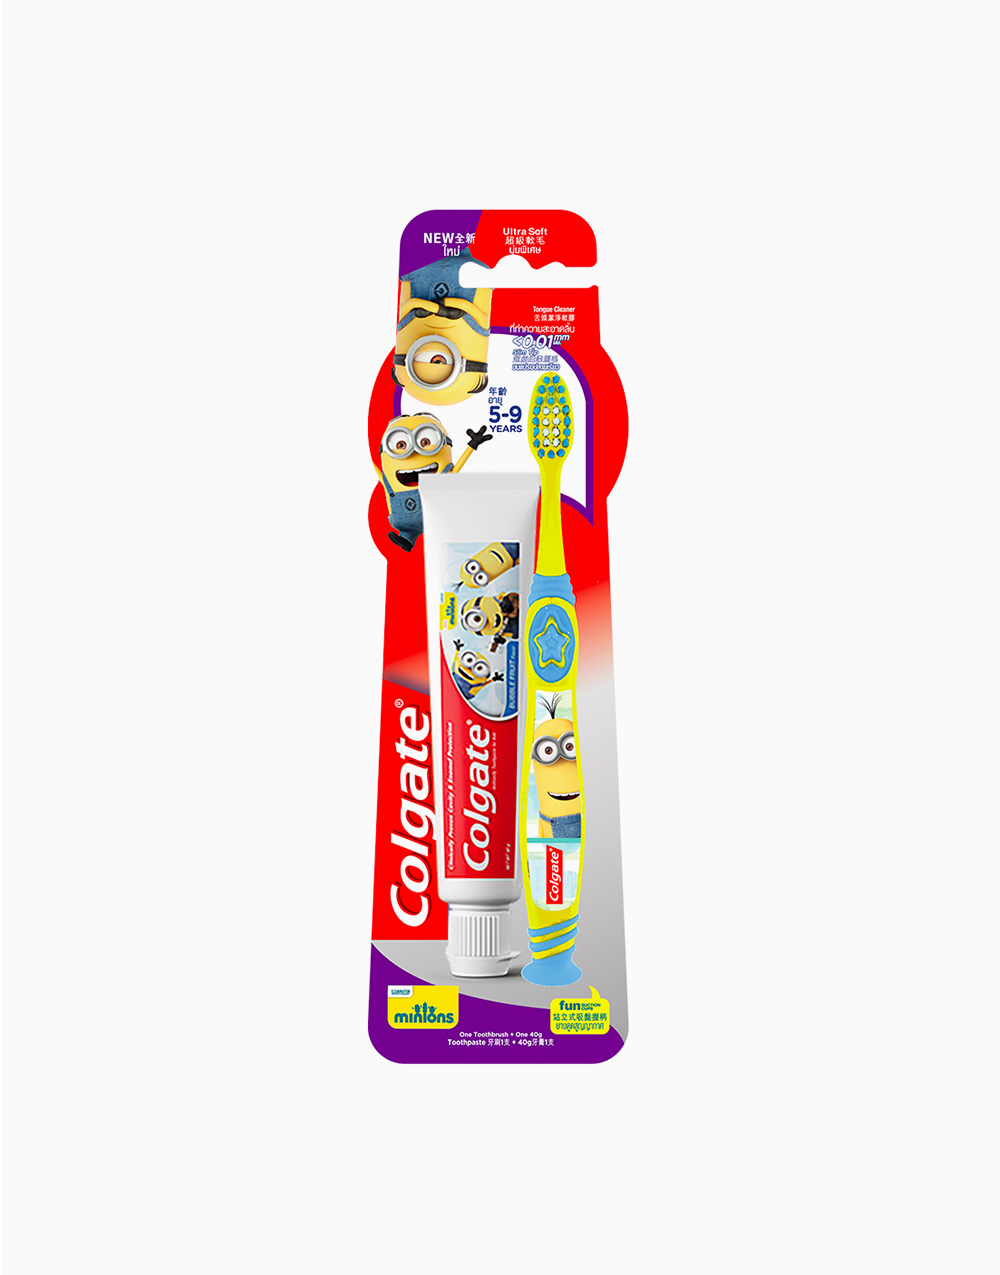 Colgate (CTB) Minions 5-9 + Minions (40g) Toothpaste Value Pack by Colgate